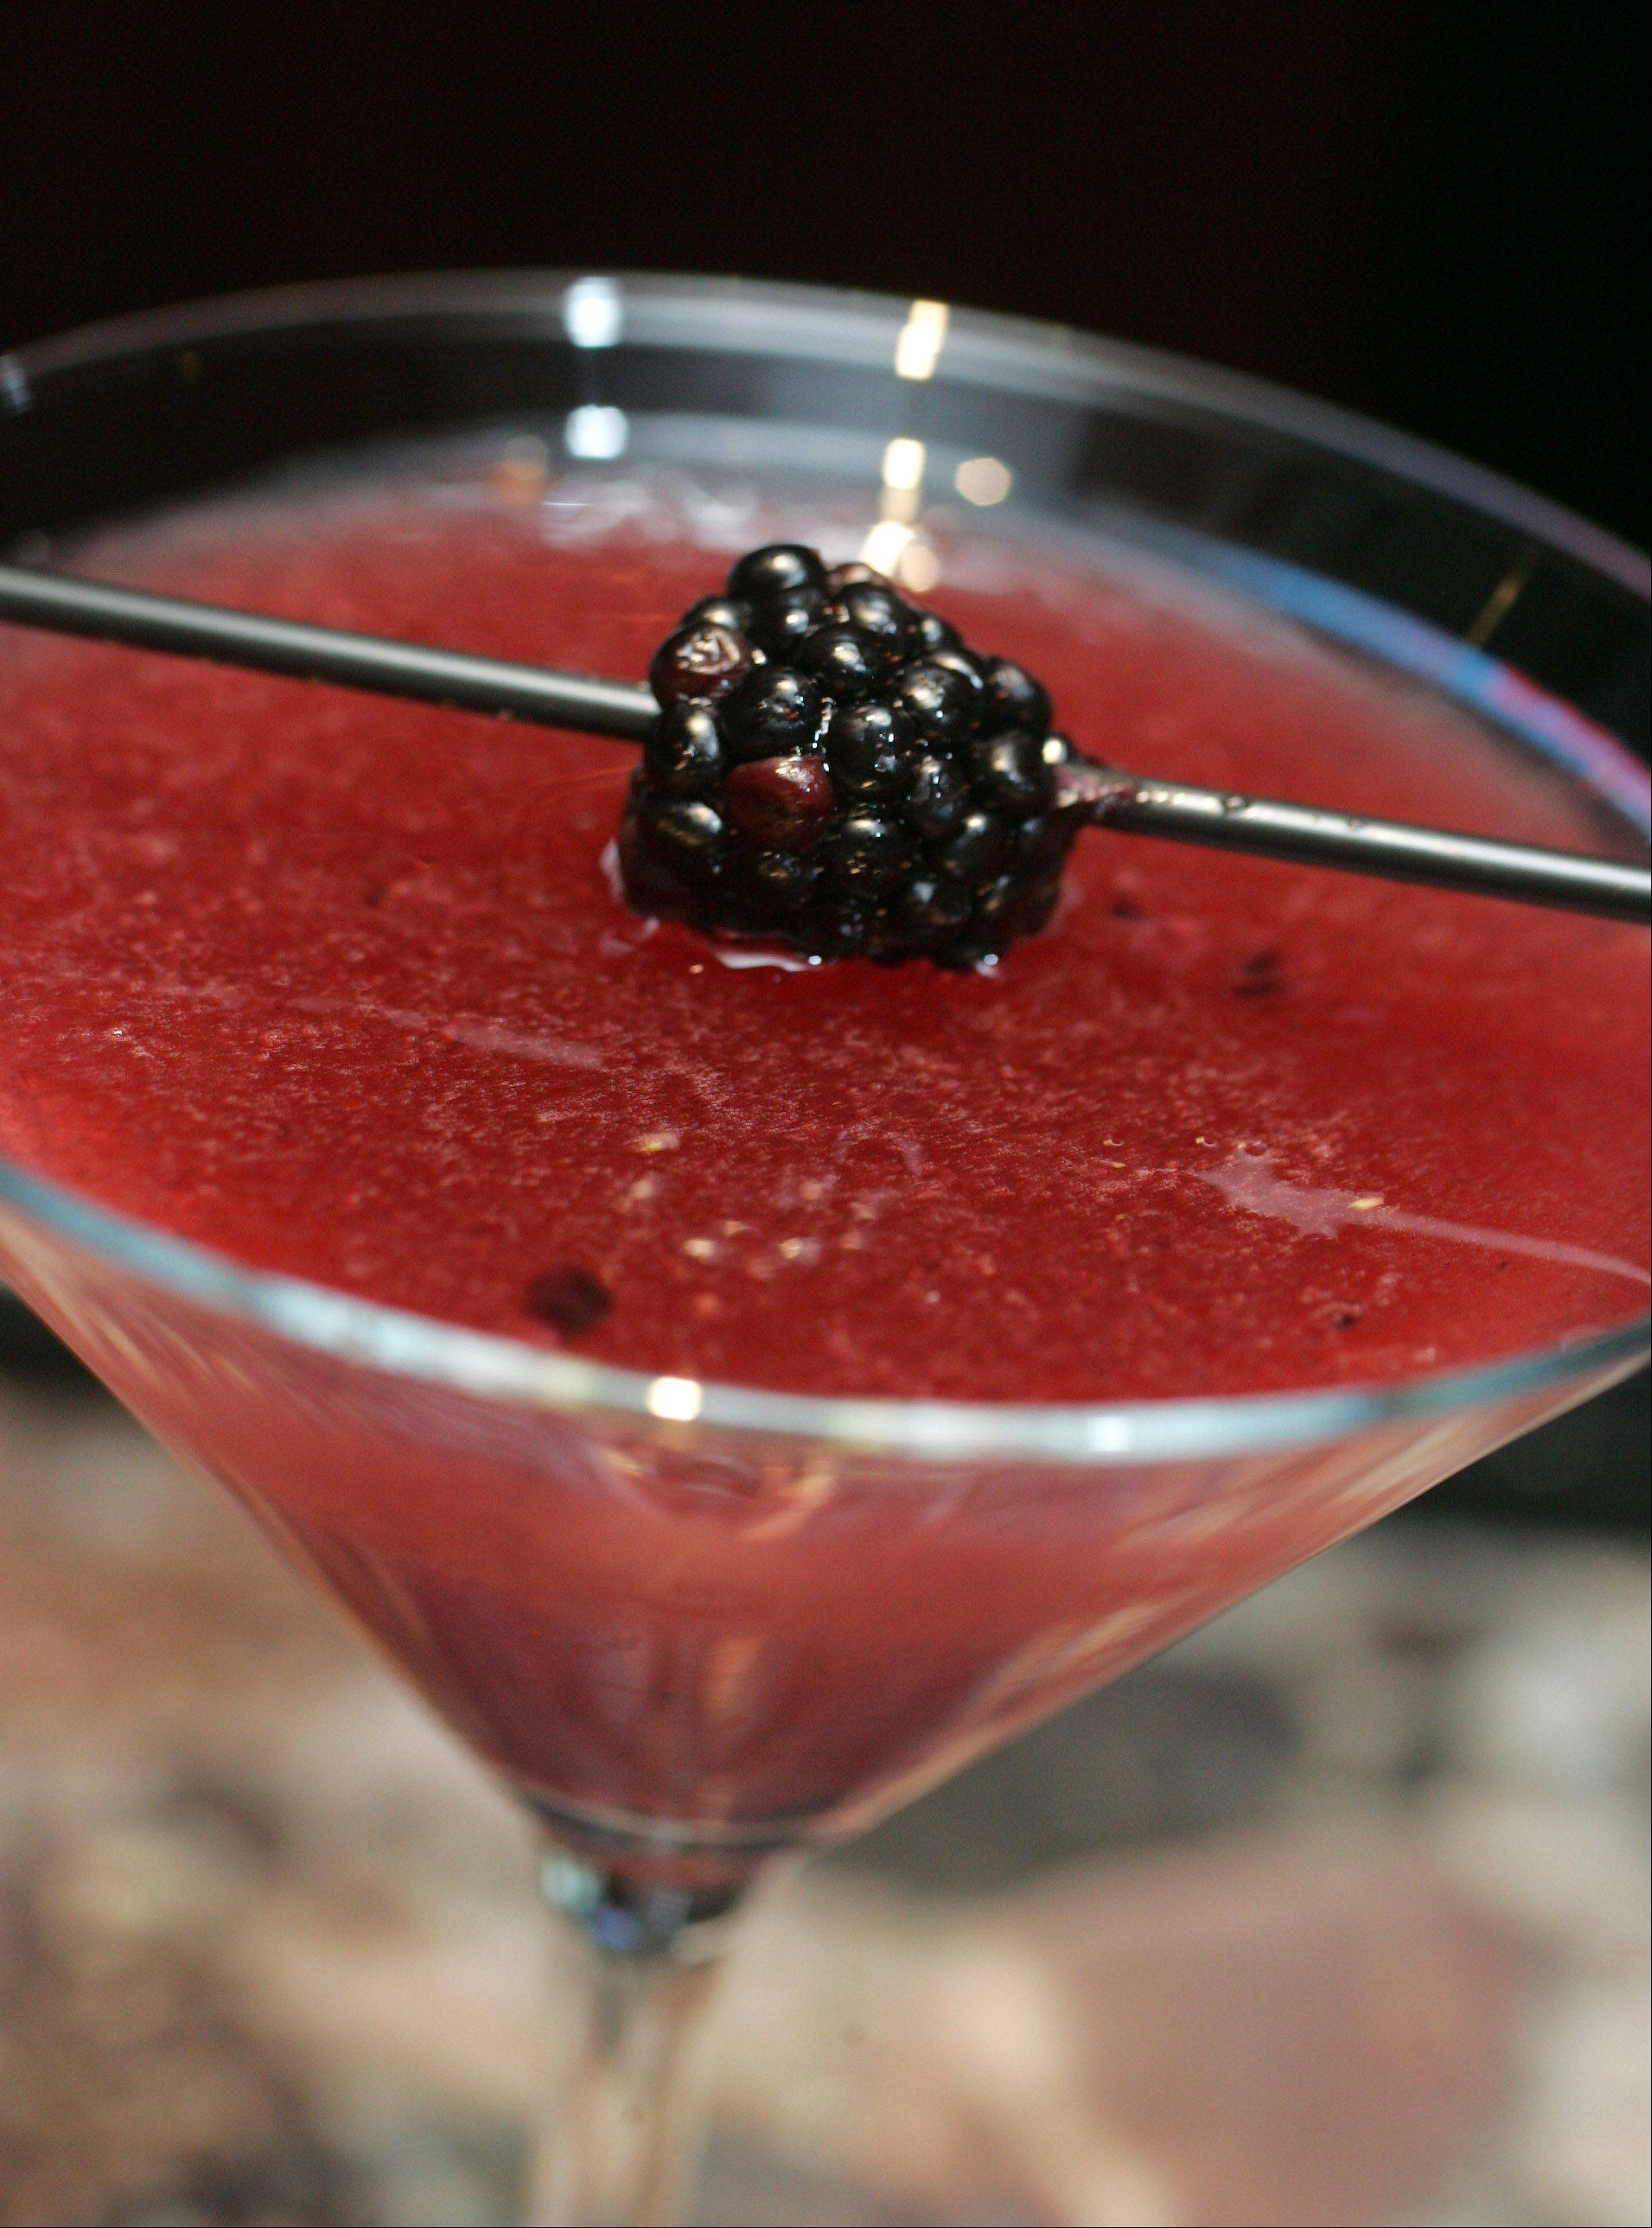 The Bodega Martini is made with Figenza Fiz vodka, muddled blackberries and Prosecco.